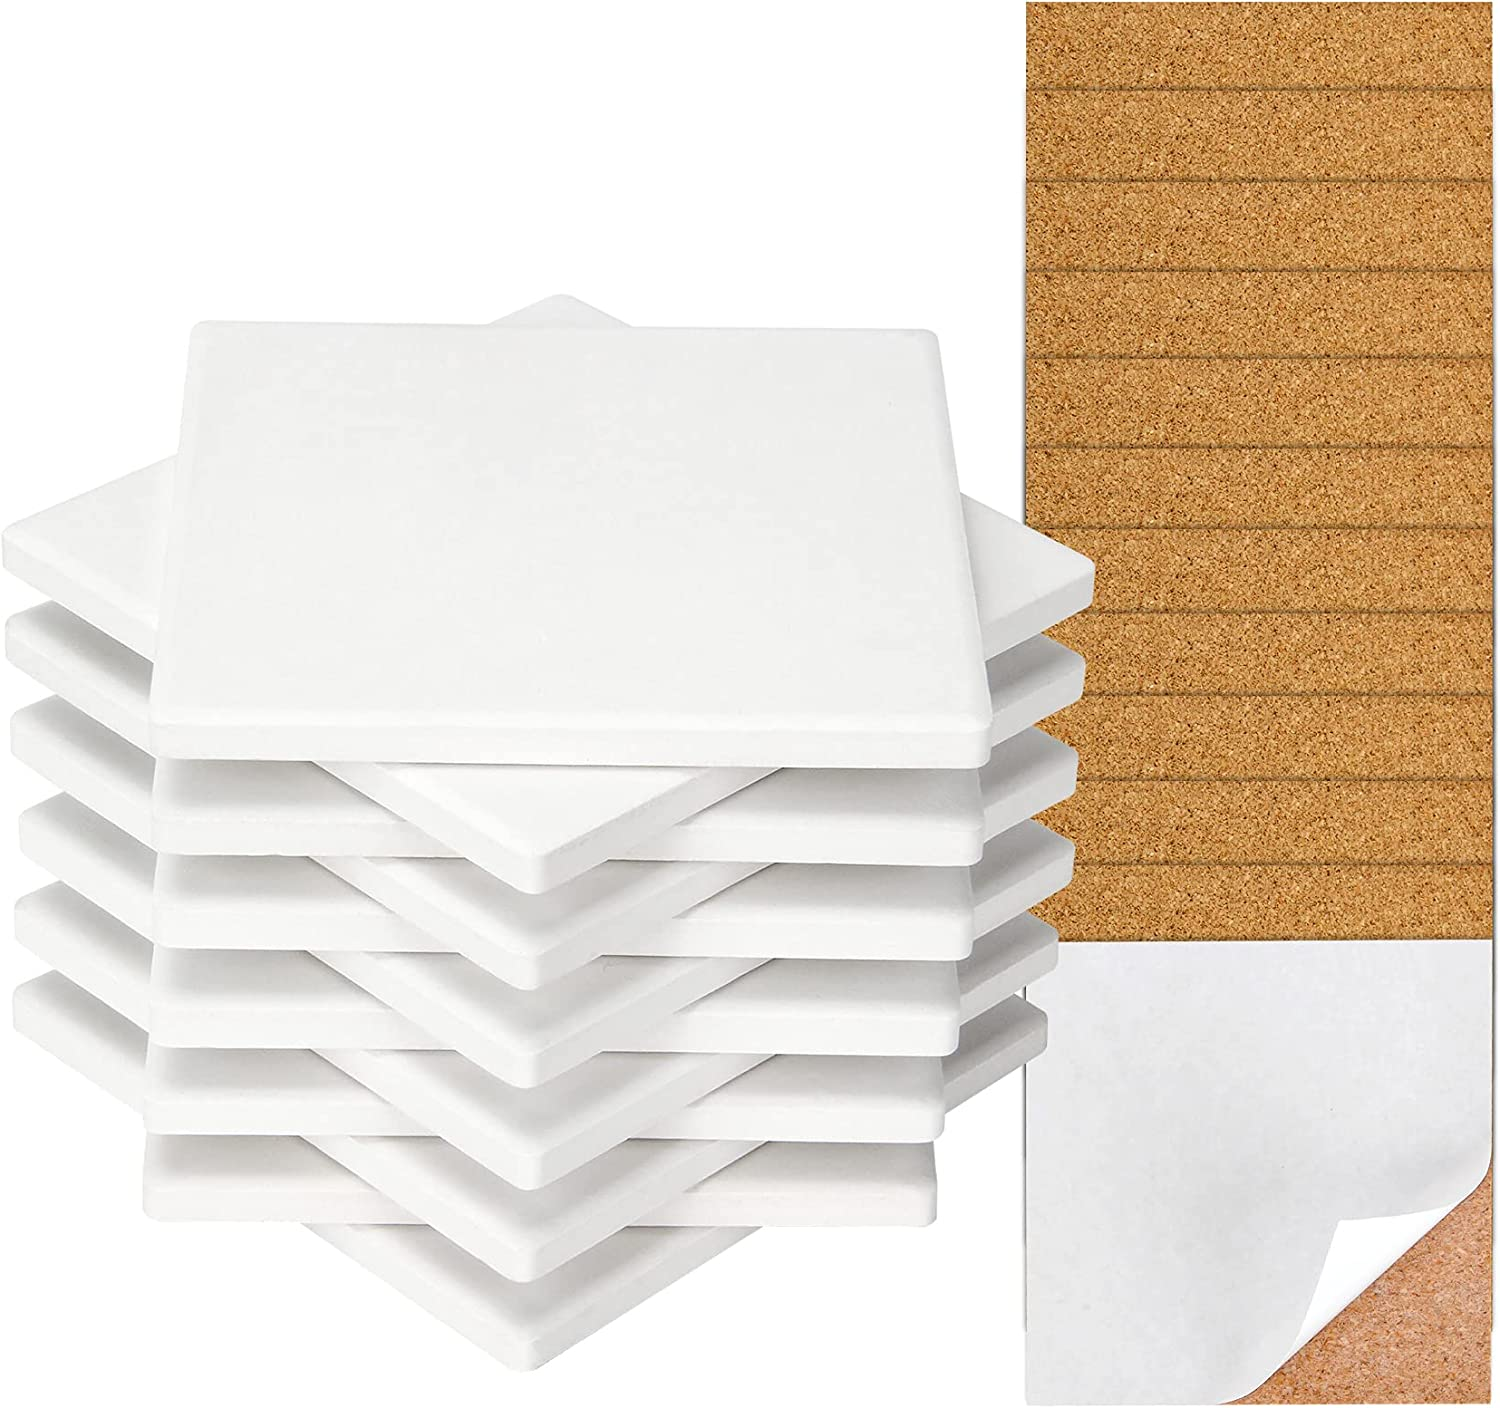 Ceramic Tile for Crafts ! Super beauty product restock quality top! Coasters Tiles Ung 12 White Pack Max 51% OFF